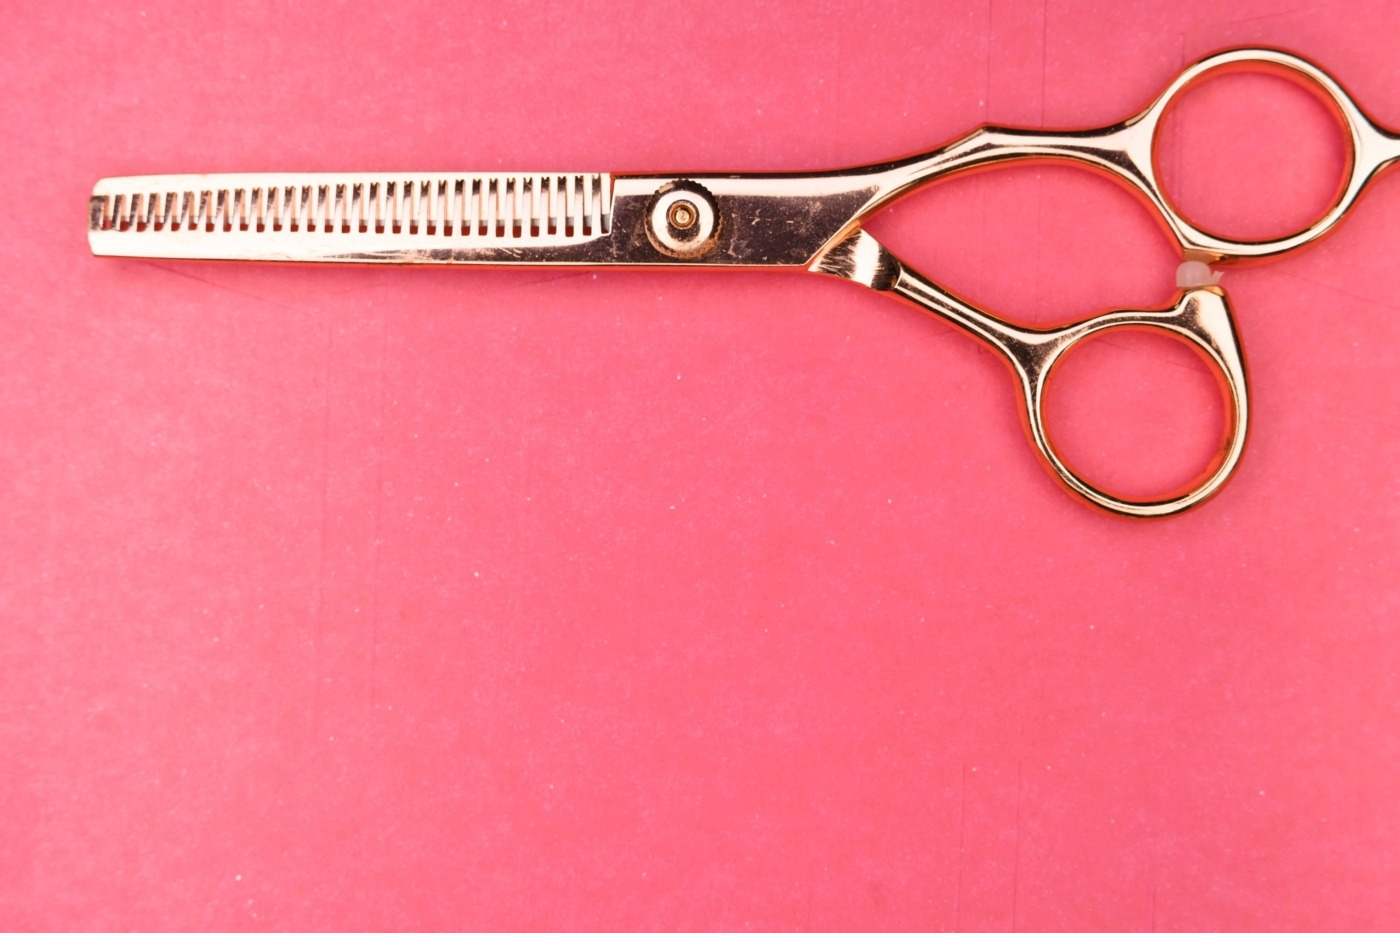 scissors/unsplash